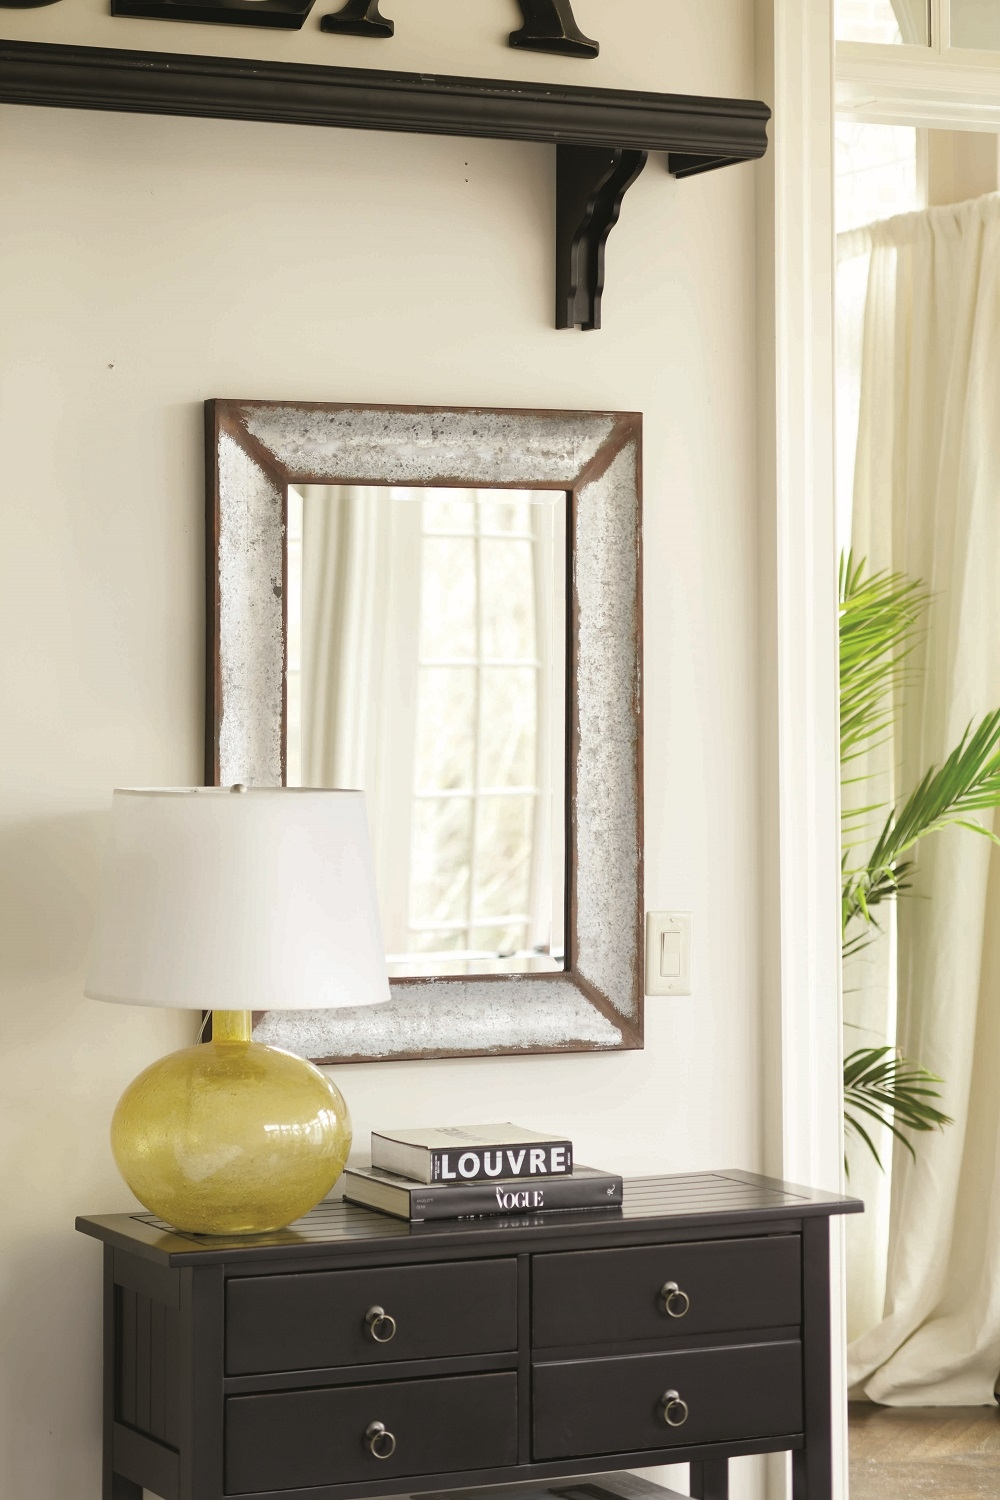 The rustic weathered finish of this zinc framed mirror reminds us of the metal flower pots you see outside the country houses of southern France. The mirror has wide bevel for light-catching contrast. Frame is hand crafted of galvanized metal and may be hung or leaned on a wall. Photo courtesy of Ballard Designs.